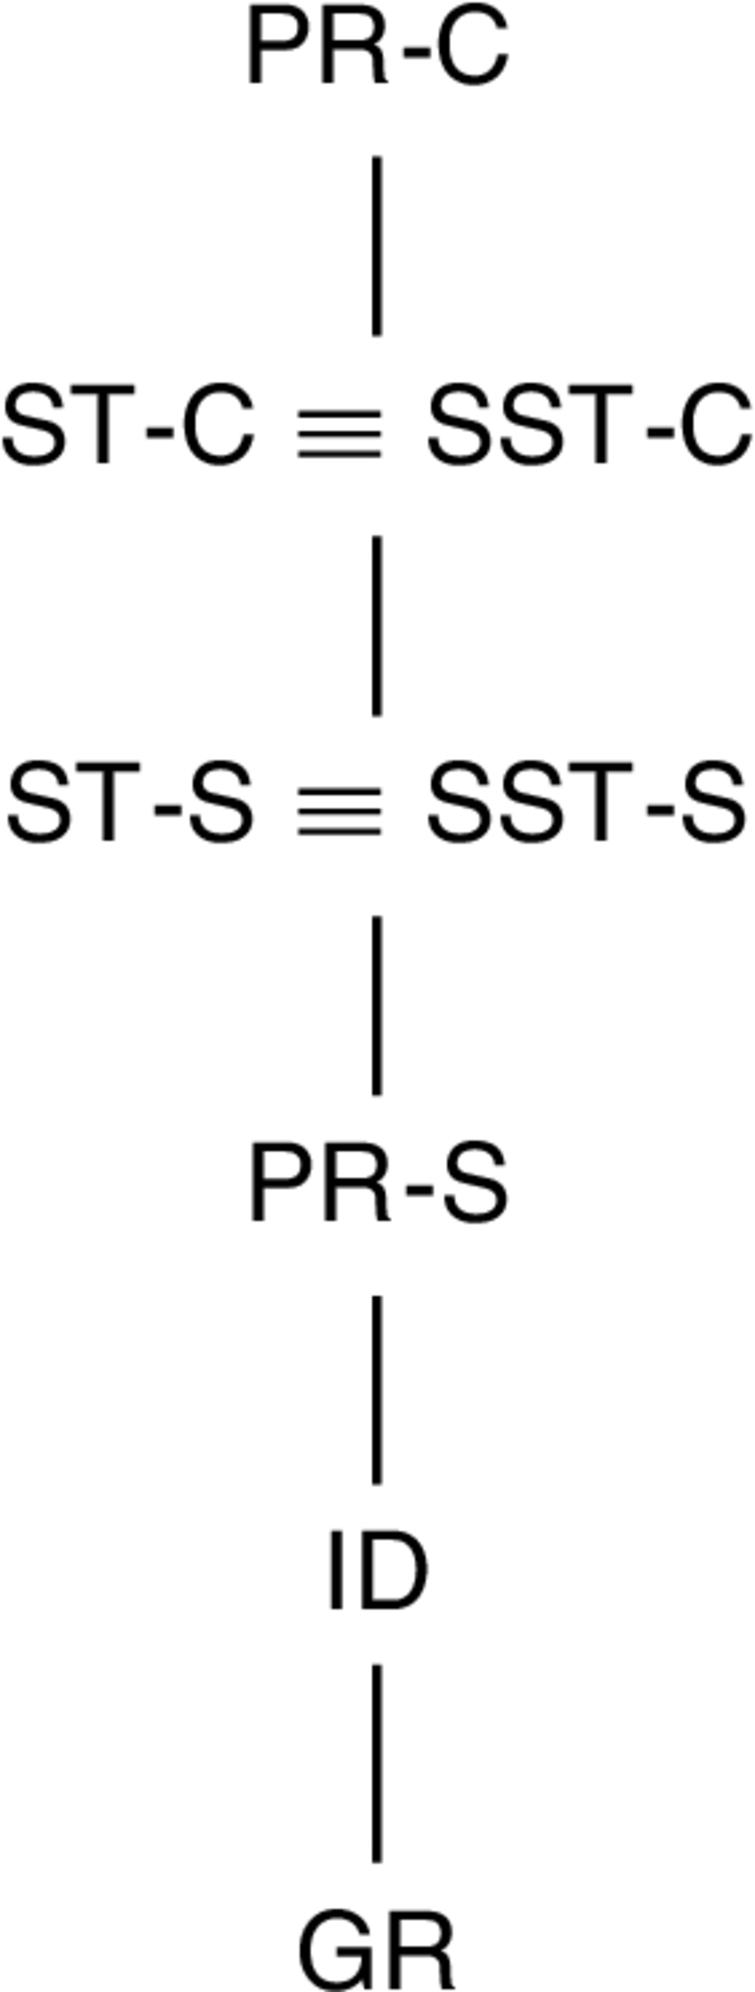 Hasse diagram of the relationship between sets of credulously and skeptically accepted arguments w.r.t. GR, ST, PR, SST, and ID for argumentation frameworks admitting at least one stable extension.